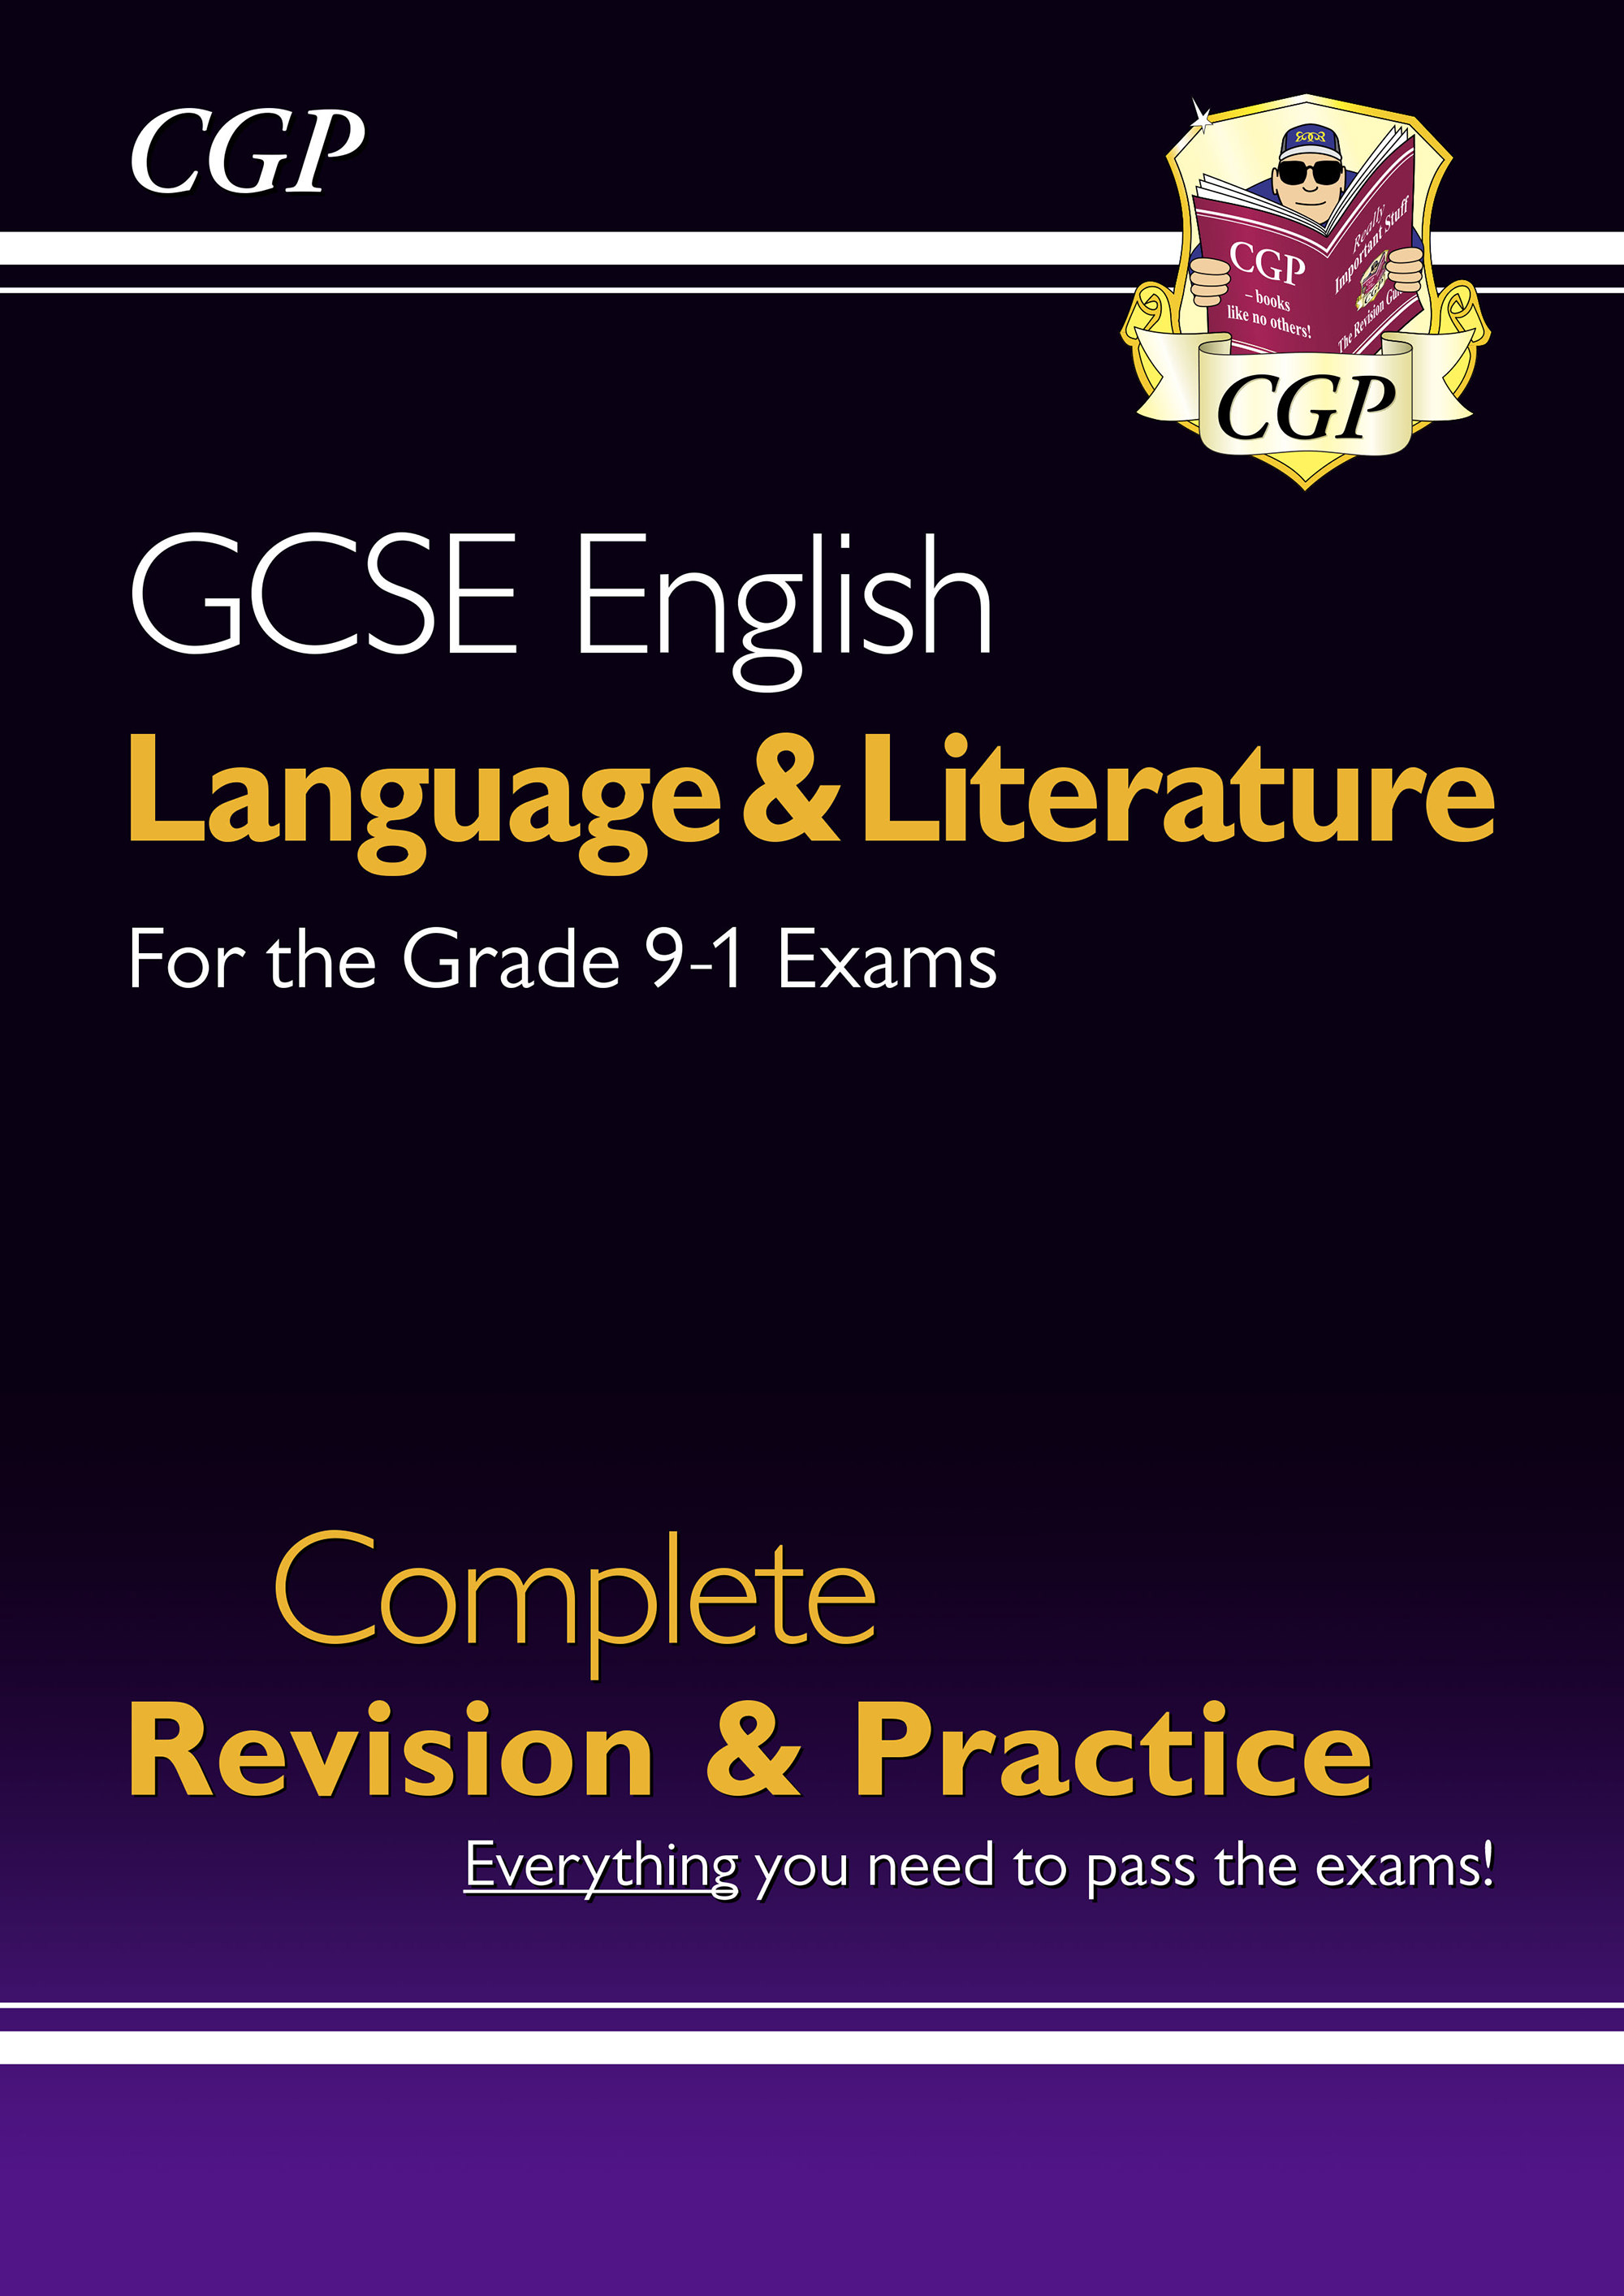 EHS45DK - GCSE English Language and Literature Complete Revision & Practice - for the Grade 9-1 Cour